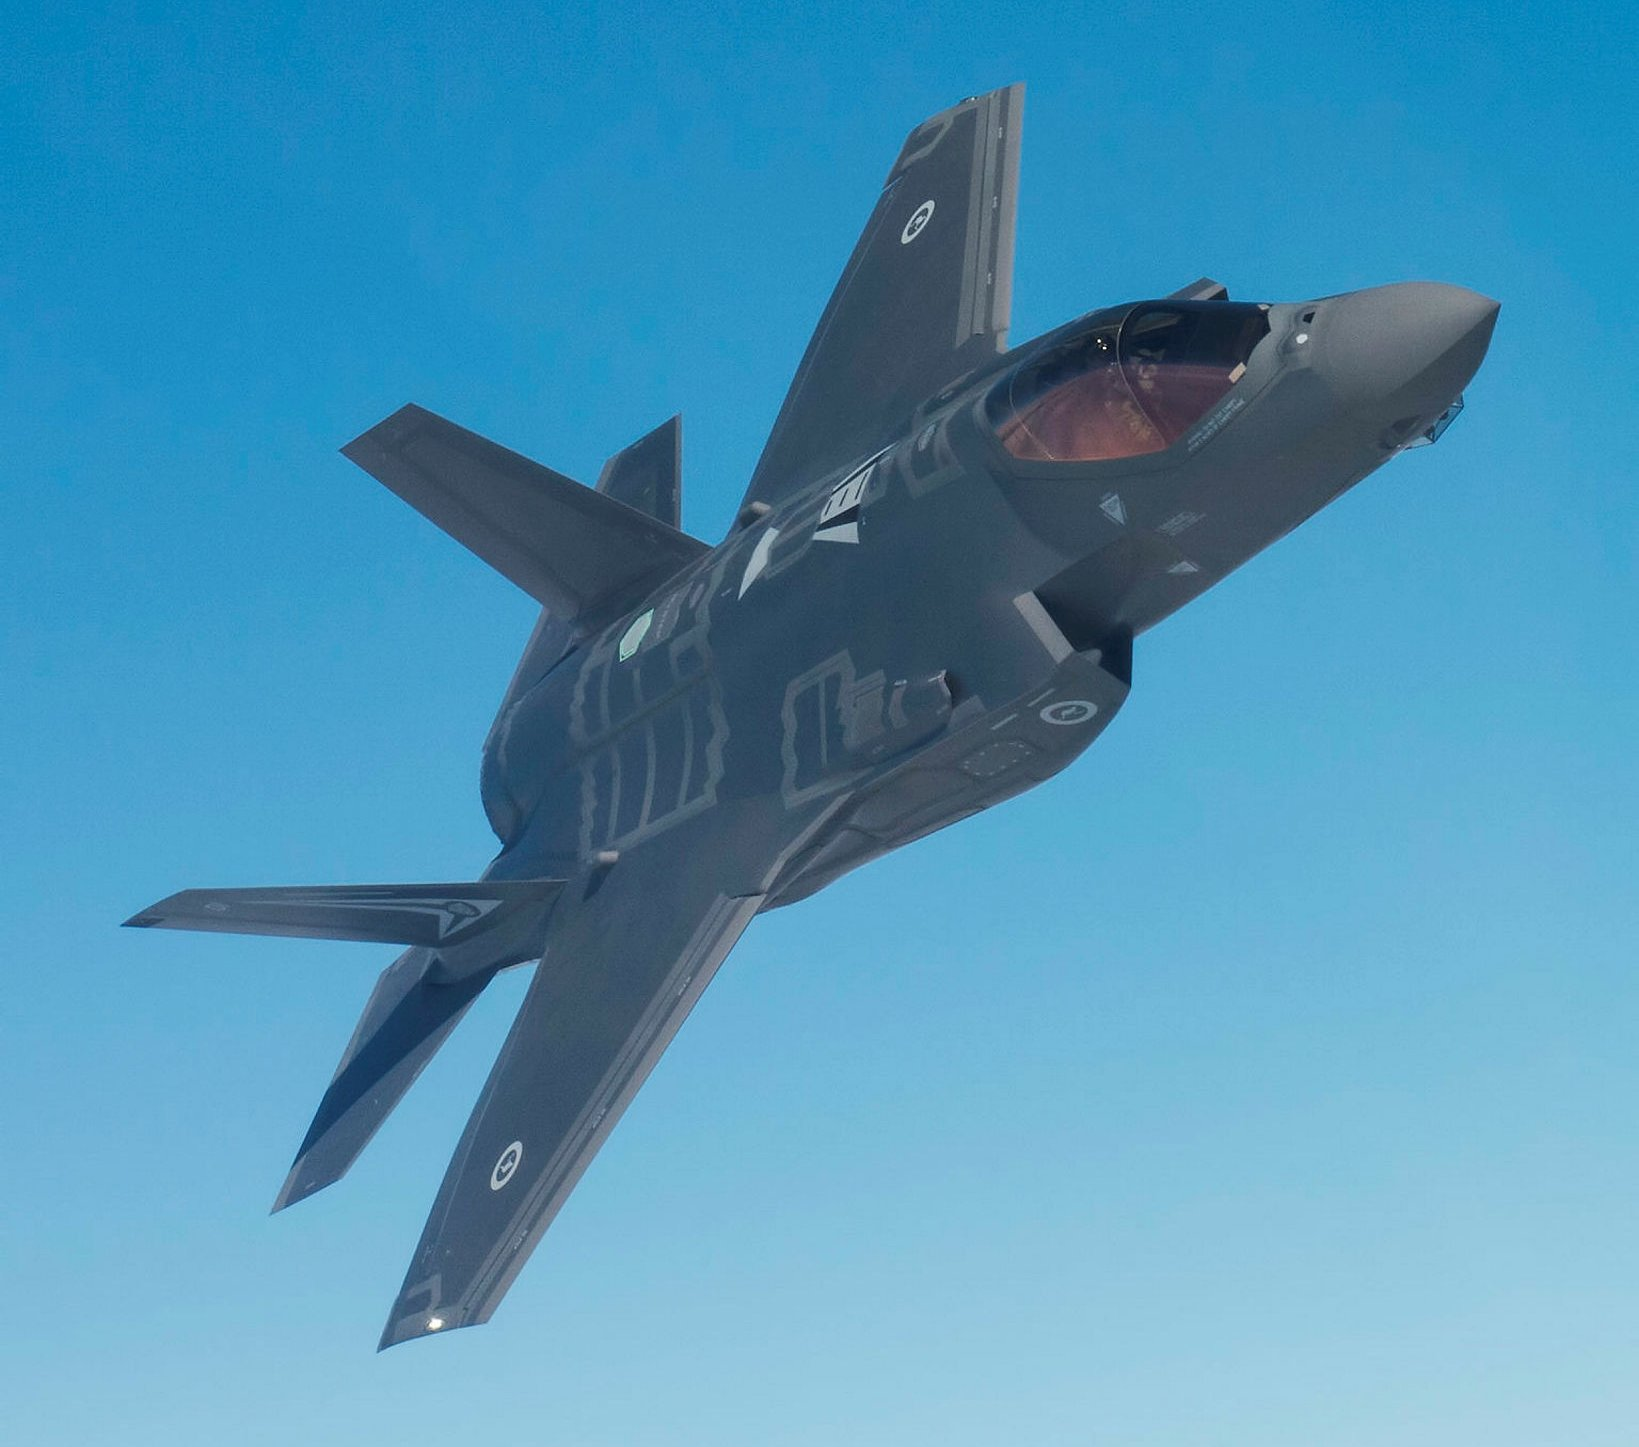 hight resolution of the f 35a lightning ii will provide for australia s future air combat and strike needs australia has committed to 72 f 35a aircraft for three operational